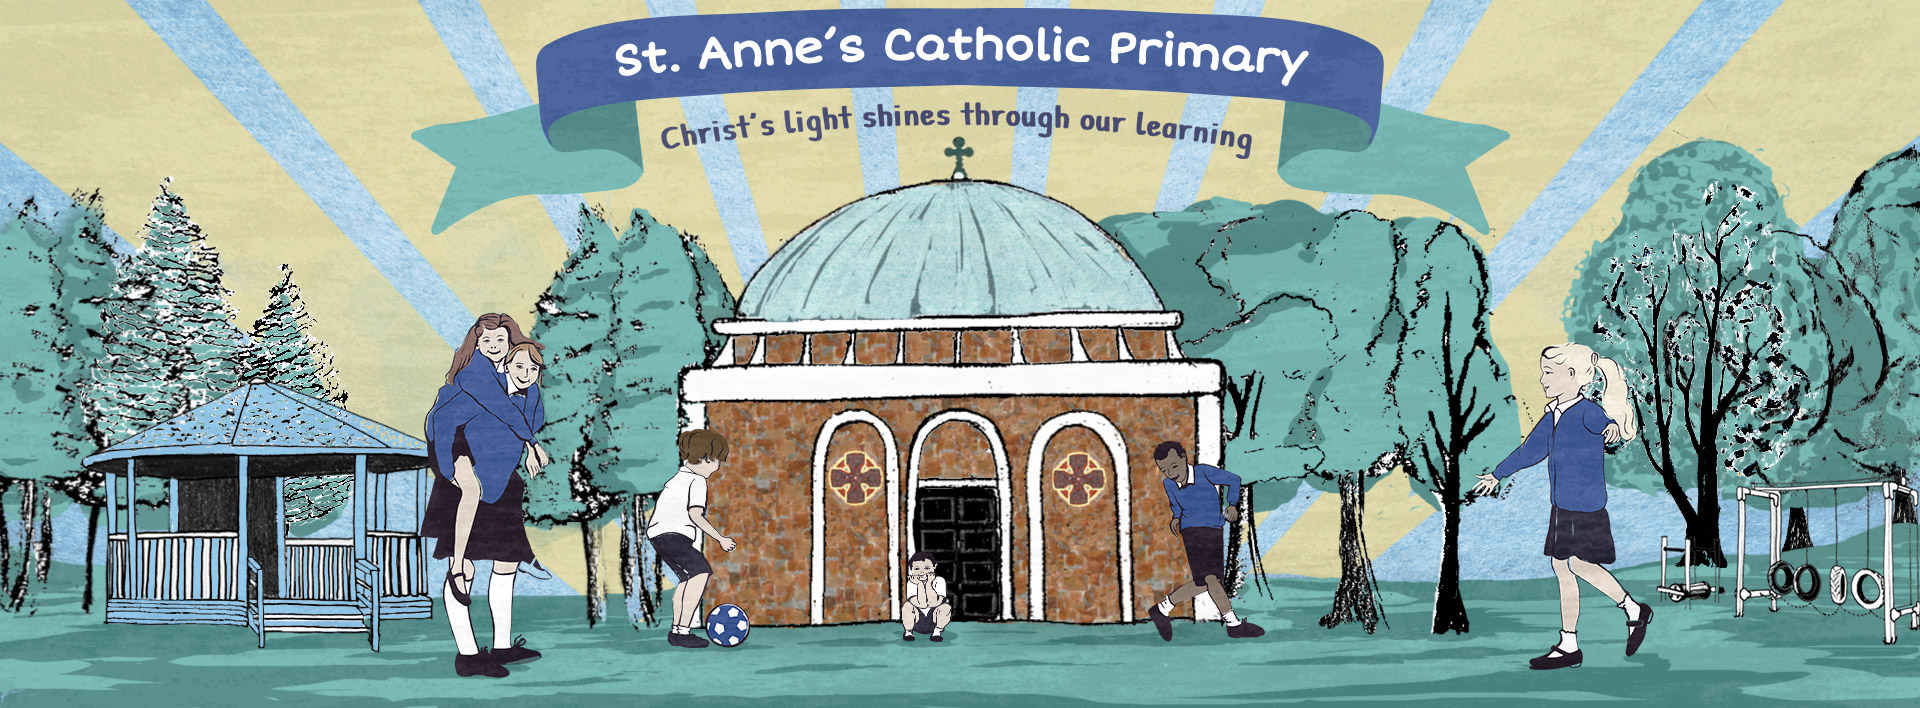 St Anne's Catholic Primary, Wrexham